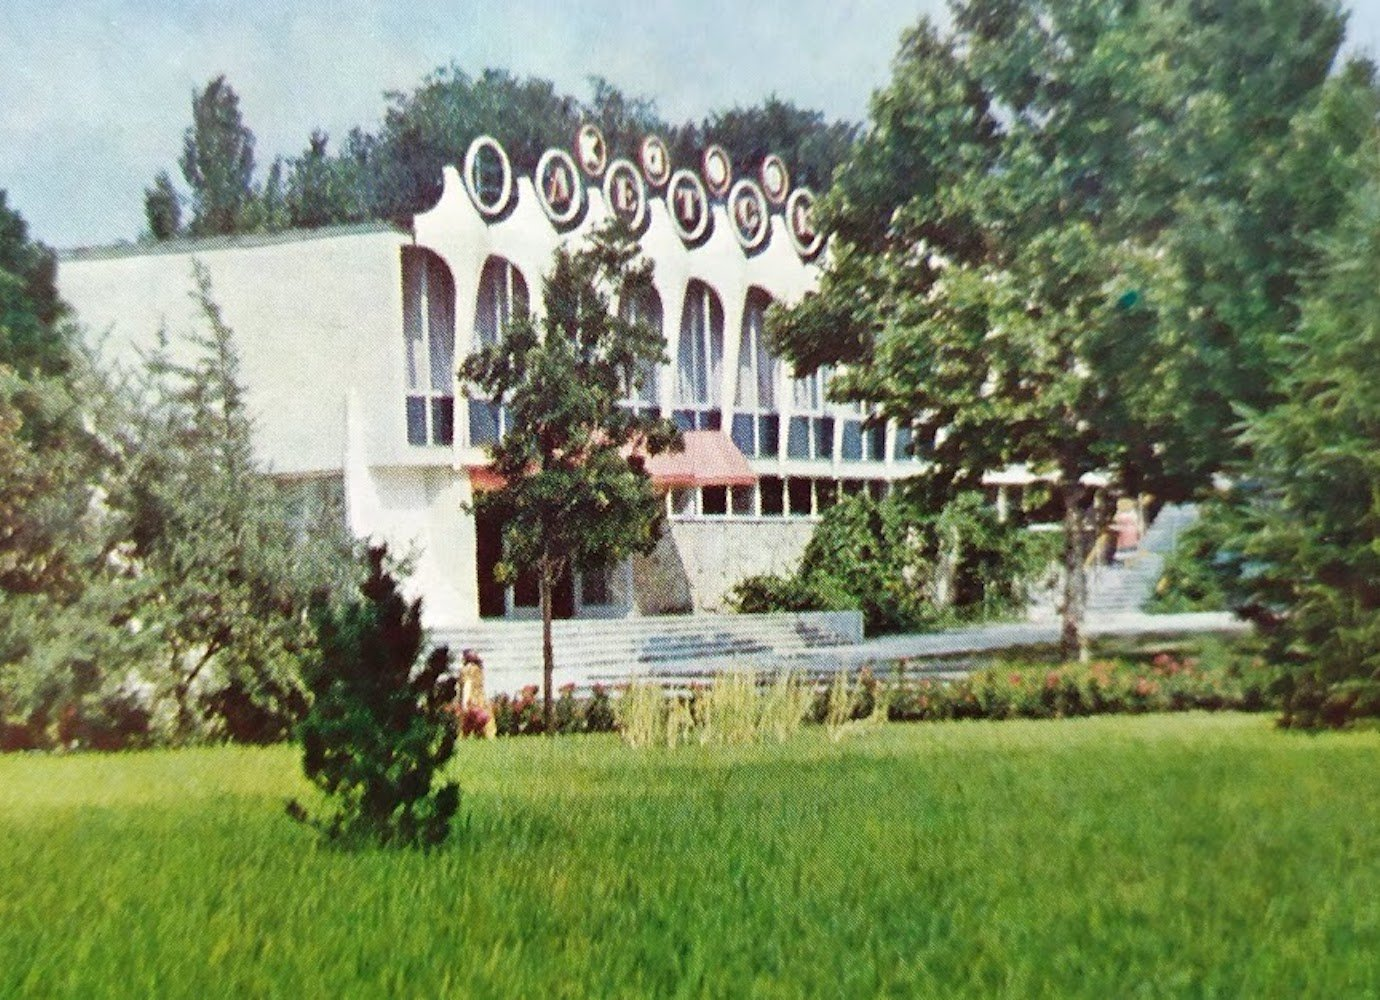 The late Soviet cafe that sparked a civic movement in Moldova | Concrete Ideas